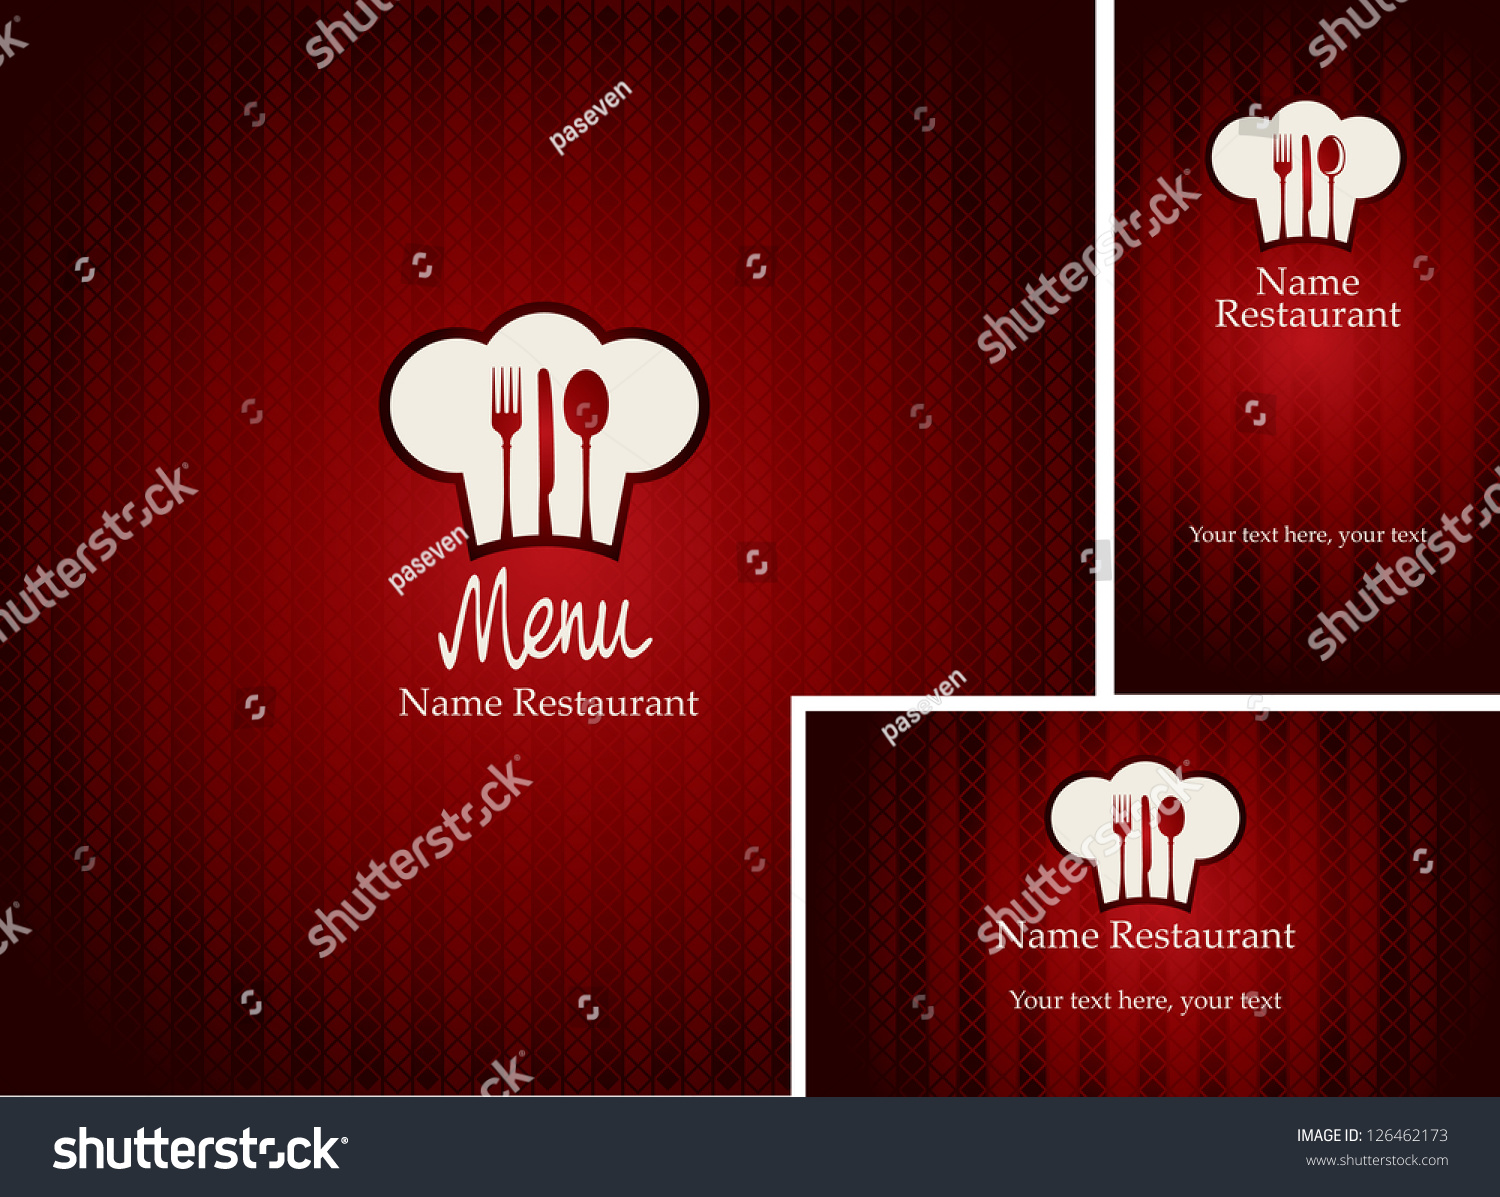 menus and business cards for restaurant with red